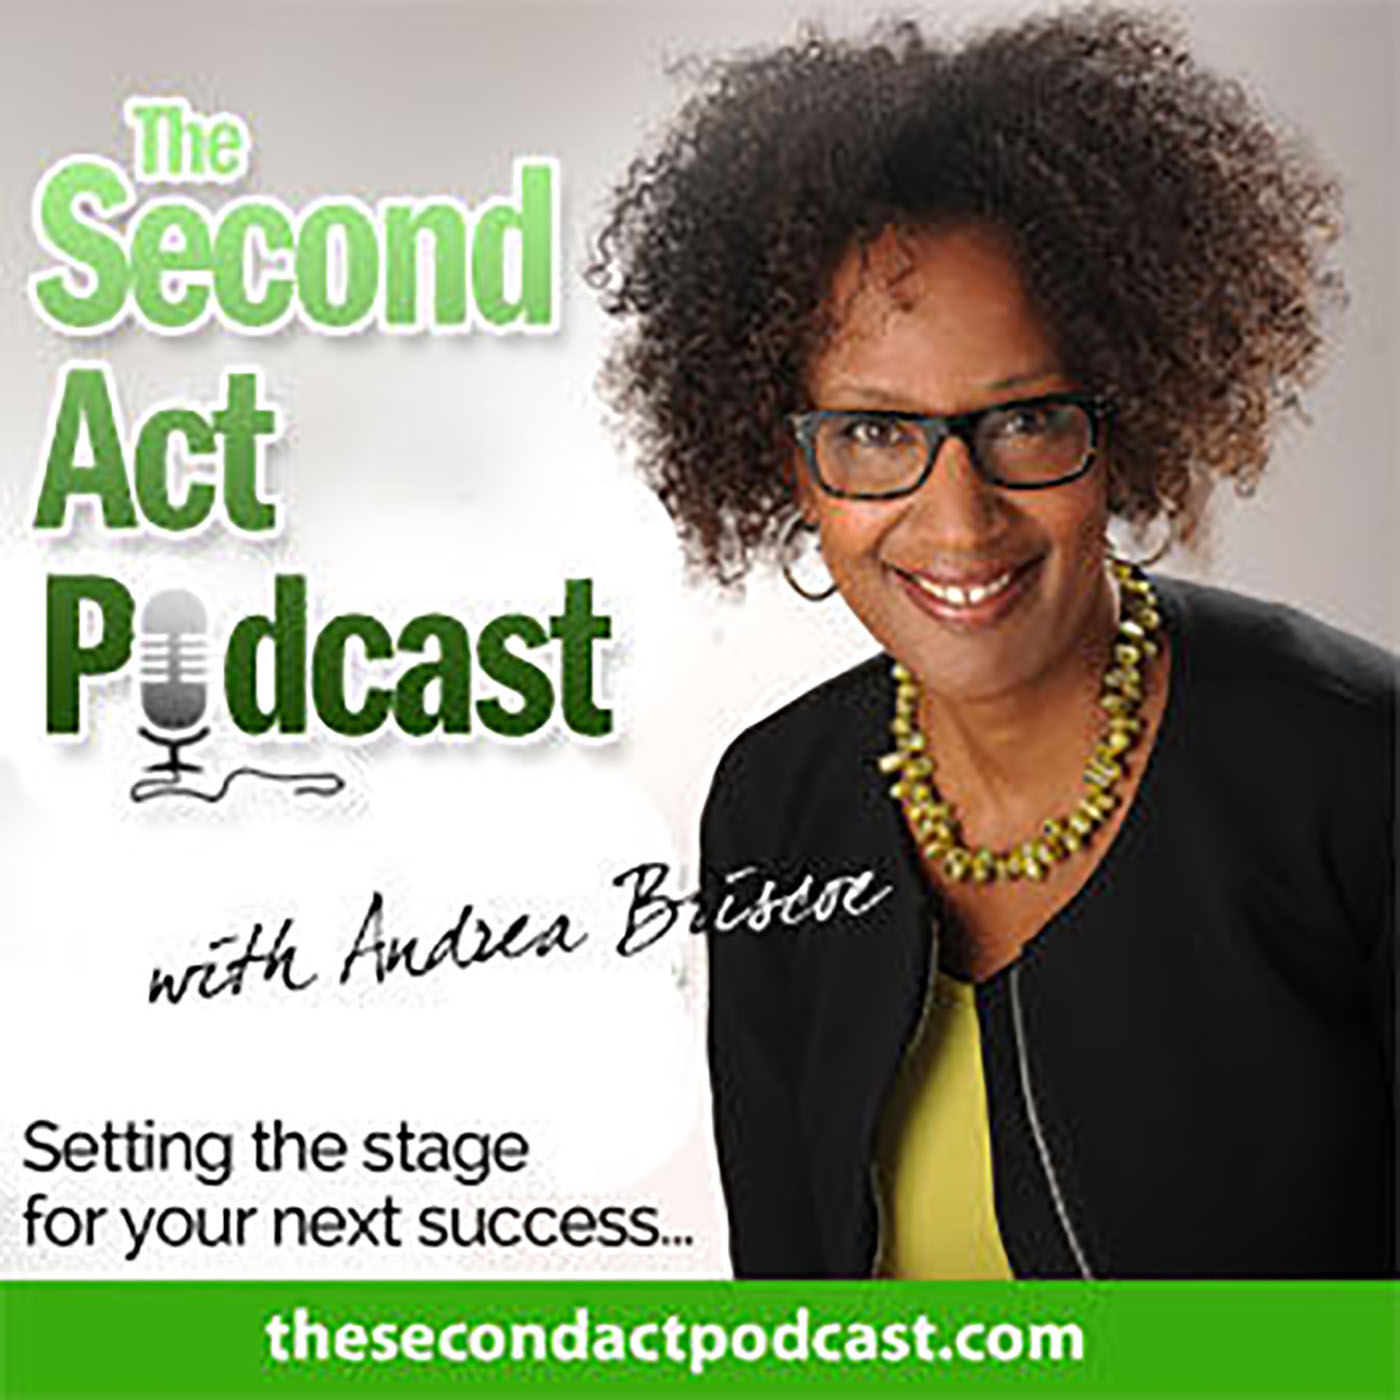 The Second Act Podcast